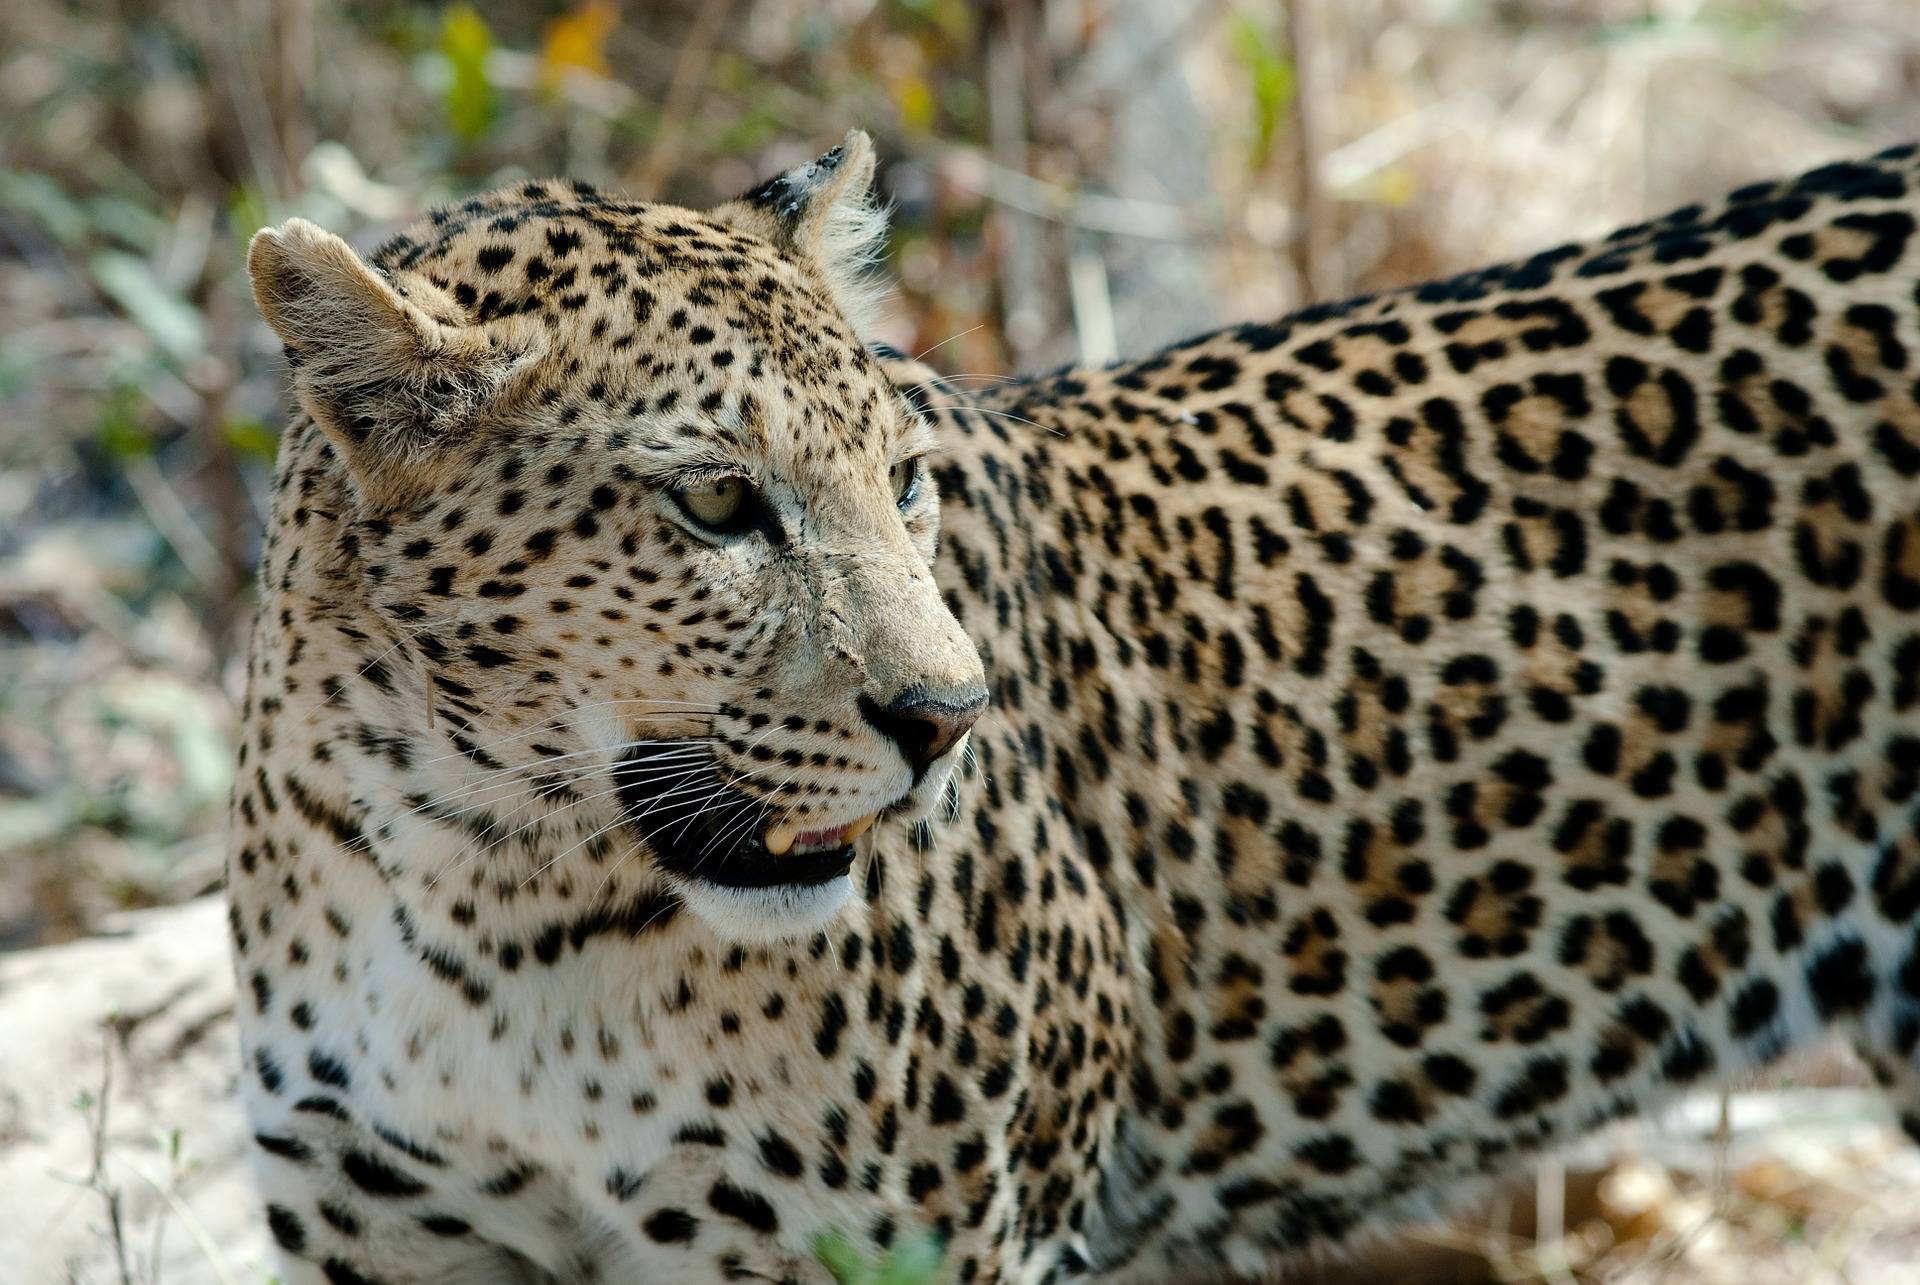 Leopards are one step closer to extinction